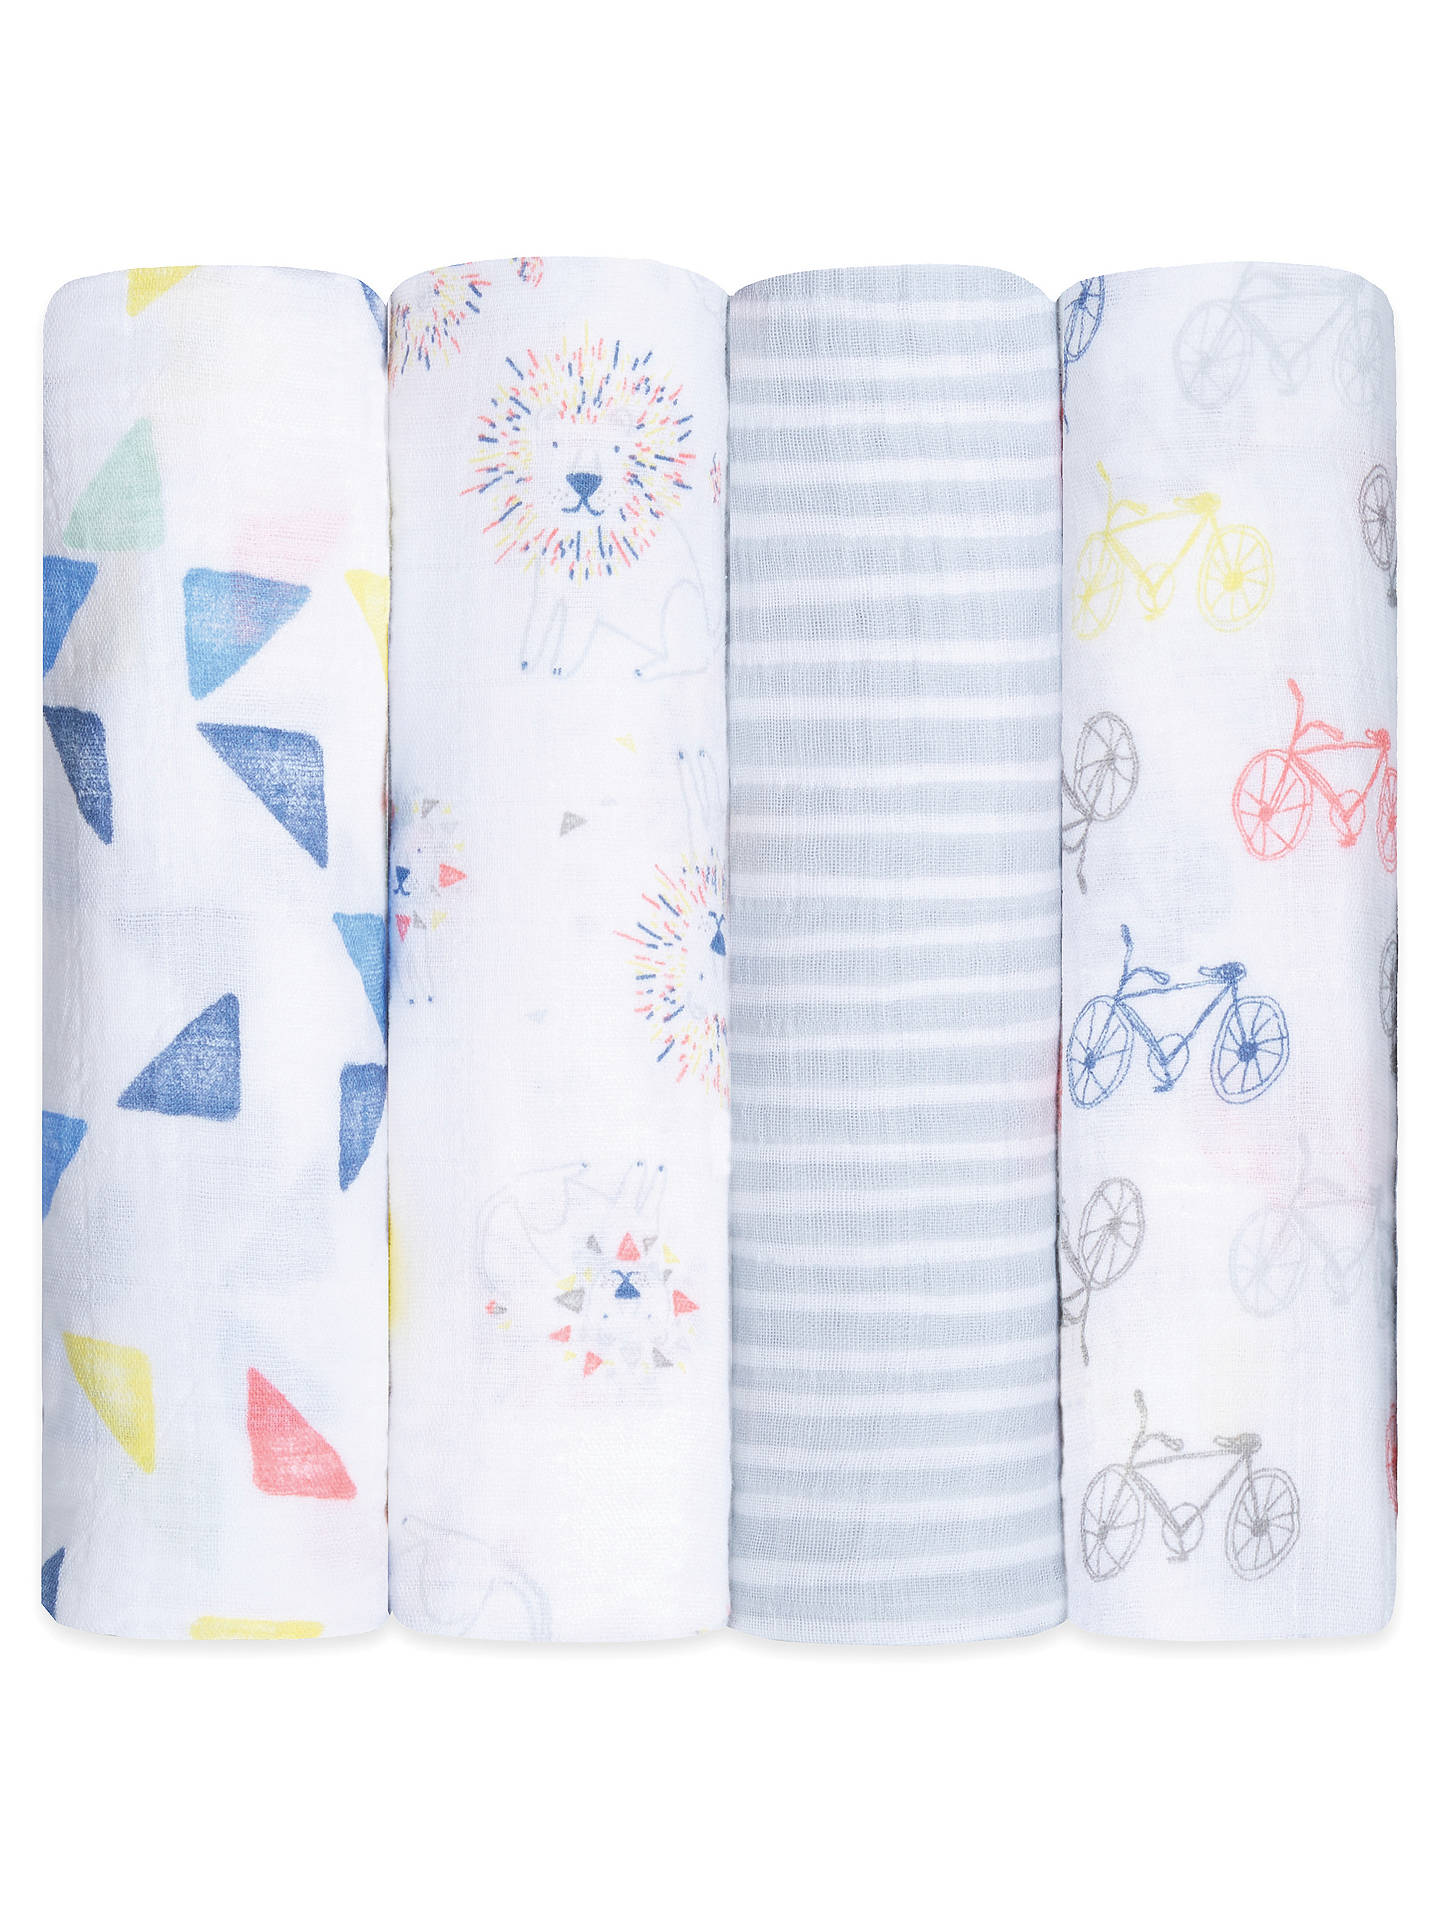 Buyaden + anais Leader of the Pack Baby Swaddle Blanket, Pack of 4 Online at johnlewis.com